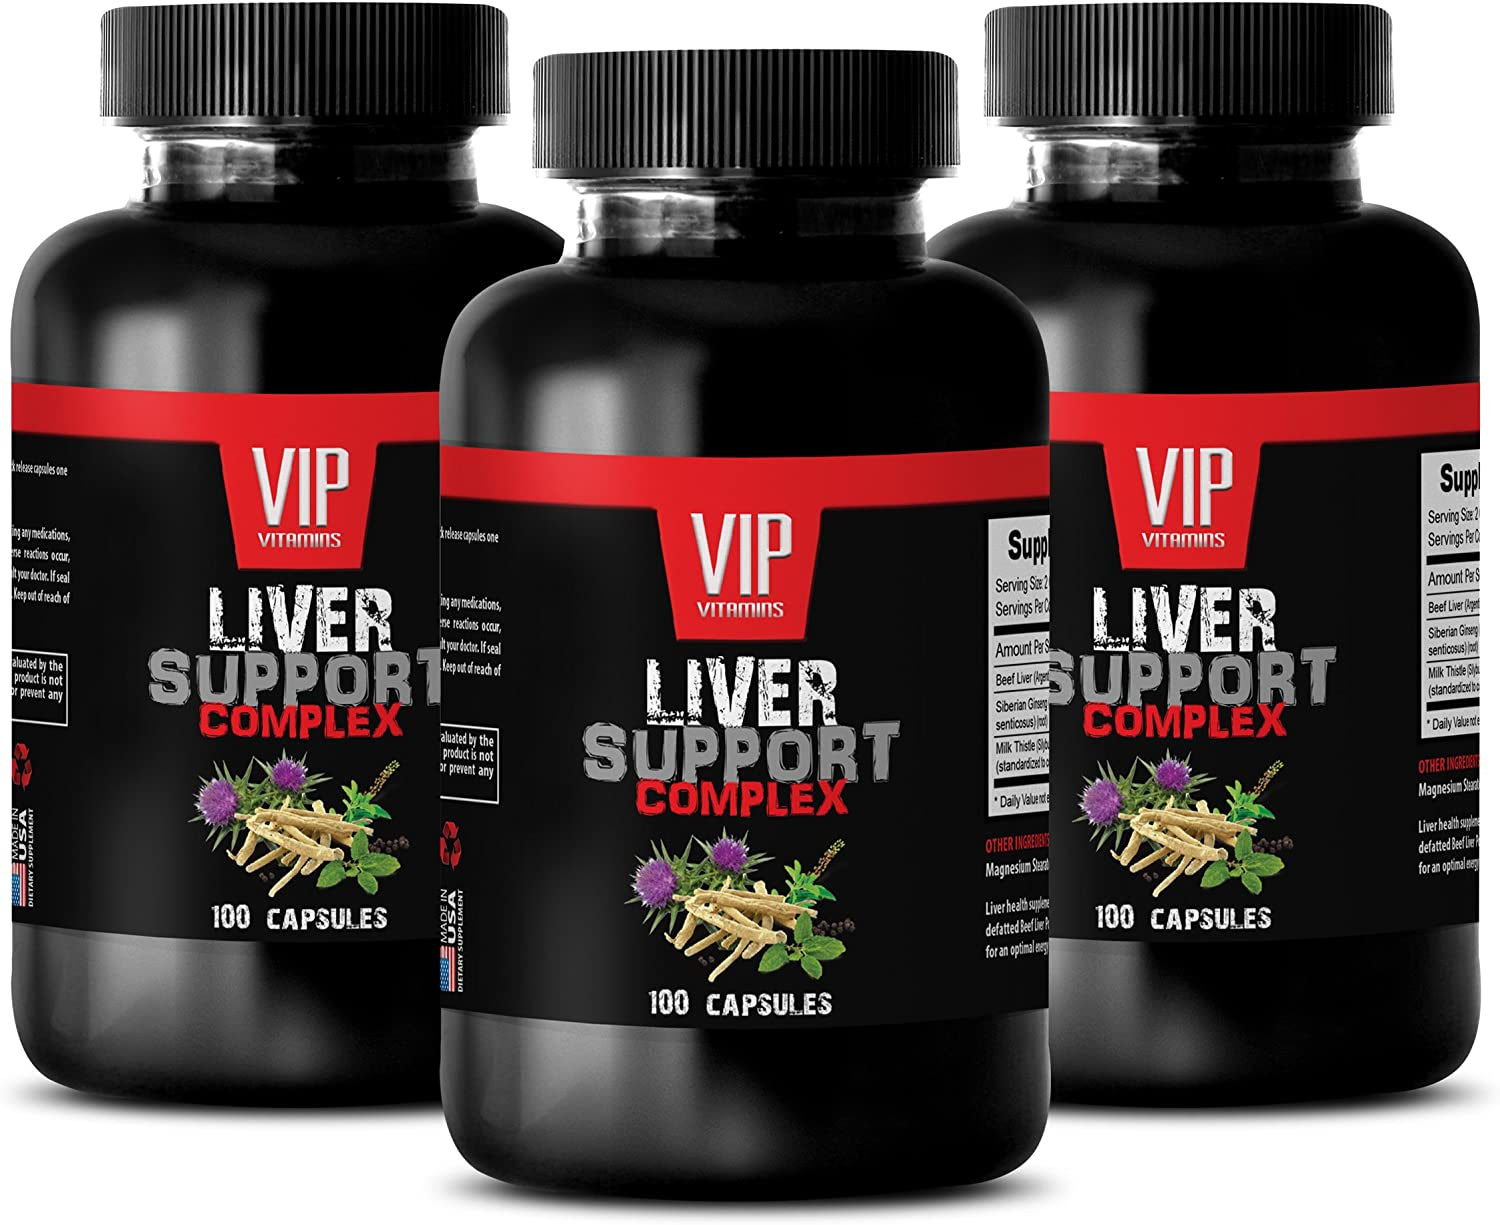 Kidney Formula - Liver Support Complex L Milk Thistle 100% quality warranty! and Beef 5% OFF